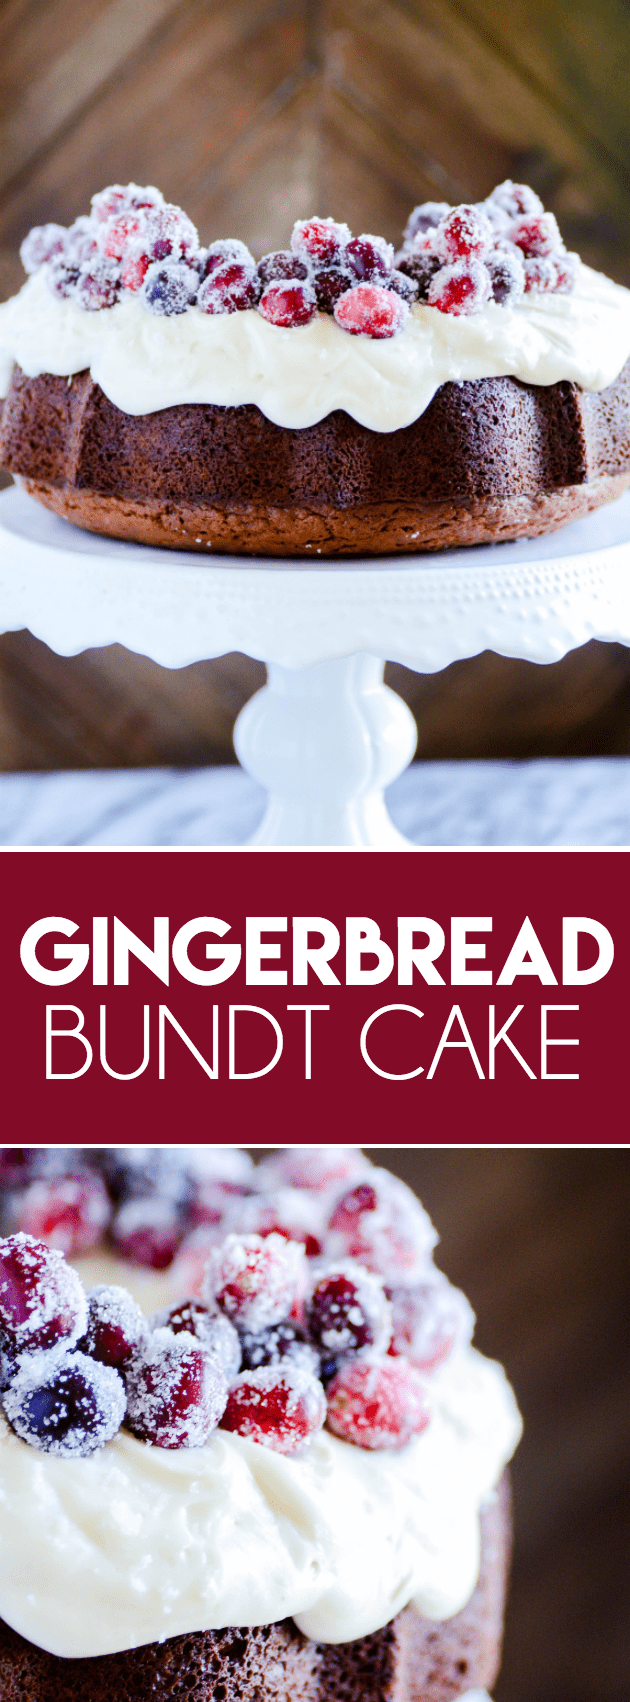 My favorite recipe for a beautifully classic and flavorful gingerbread cake with cream cheese frosting. Add sugared cranberries to dress it up for the holidays!